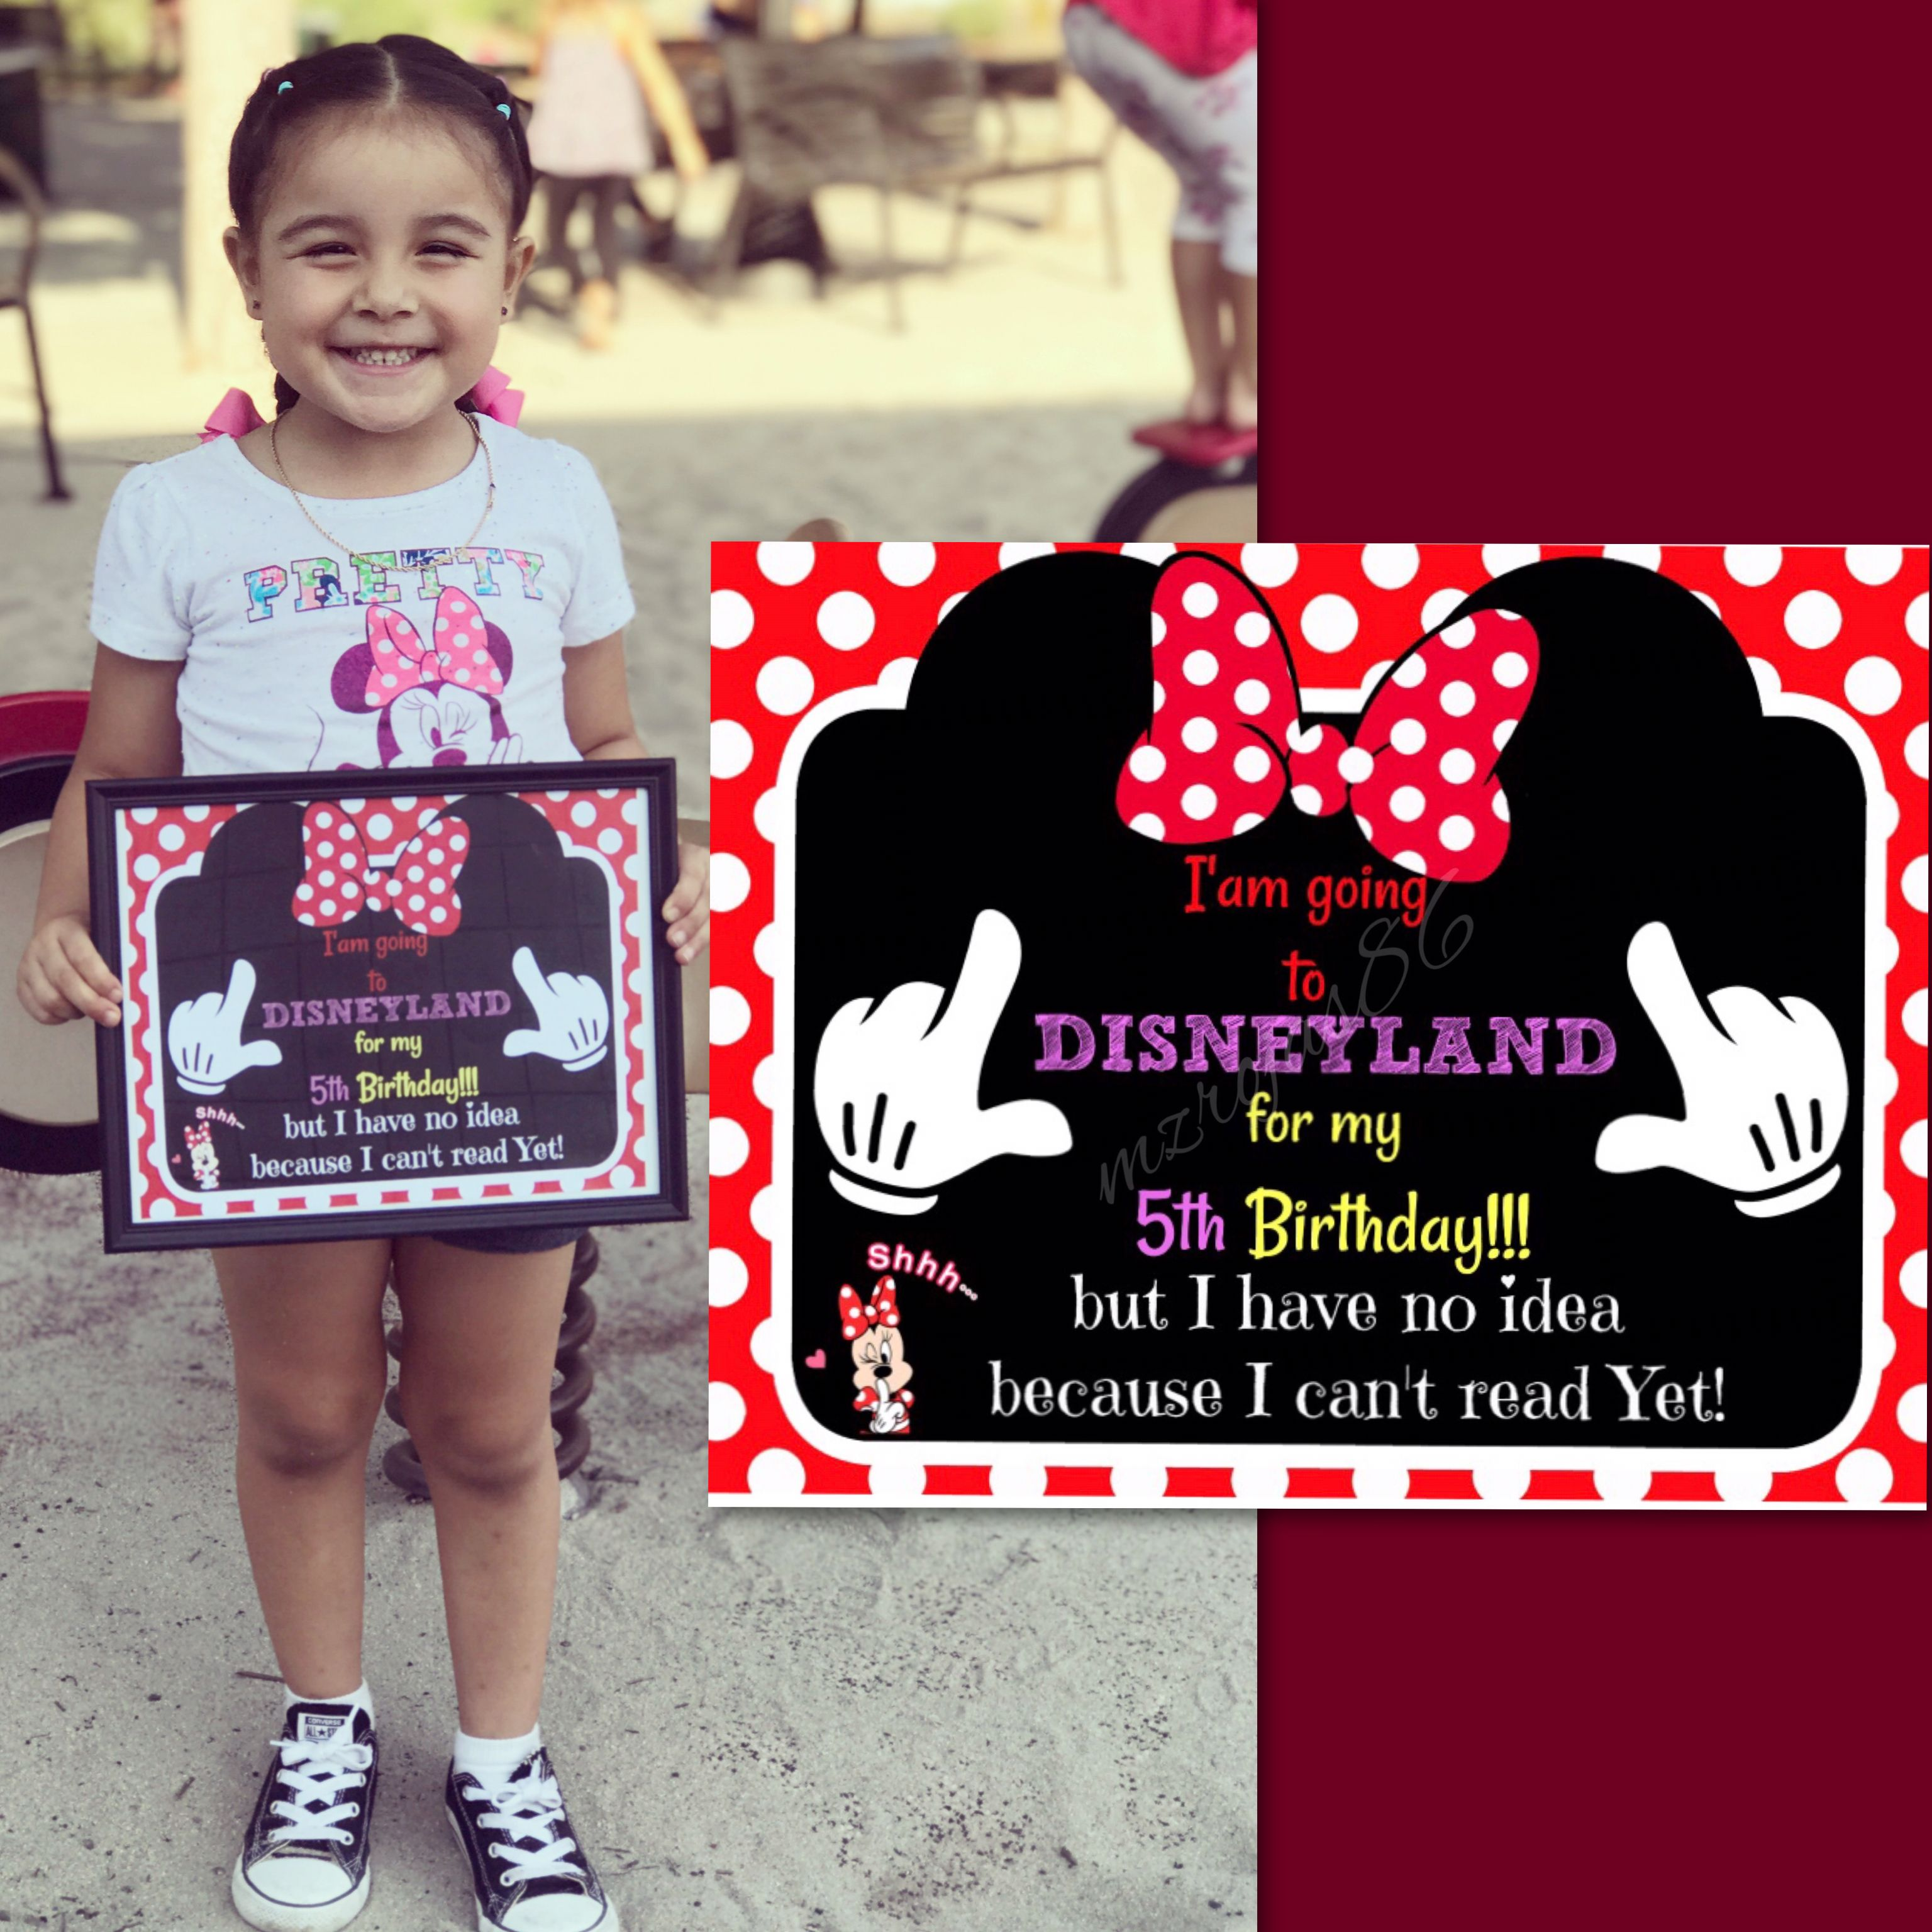 Cute Disneyland Surprise Sign I Made For My Daughter's 5th